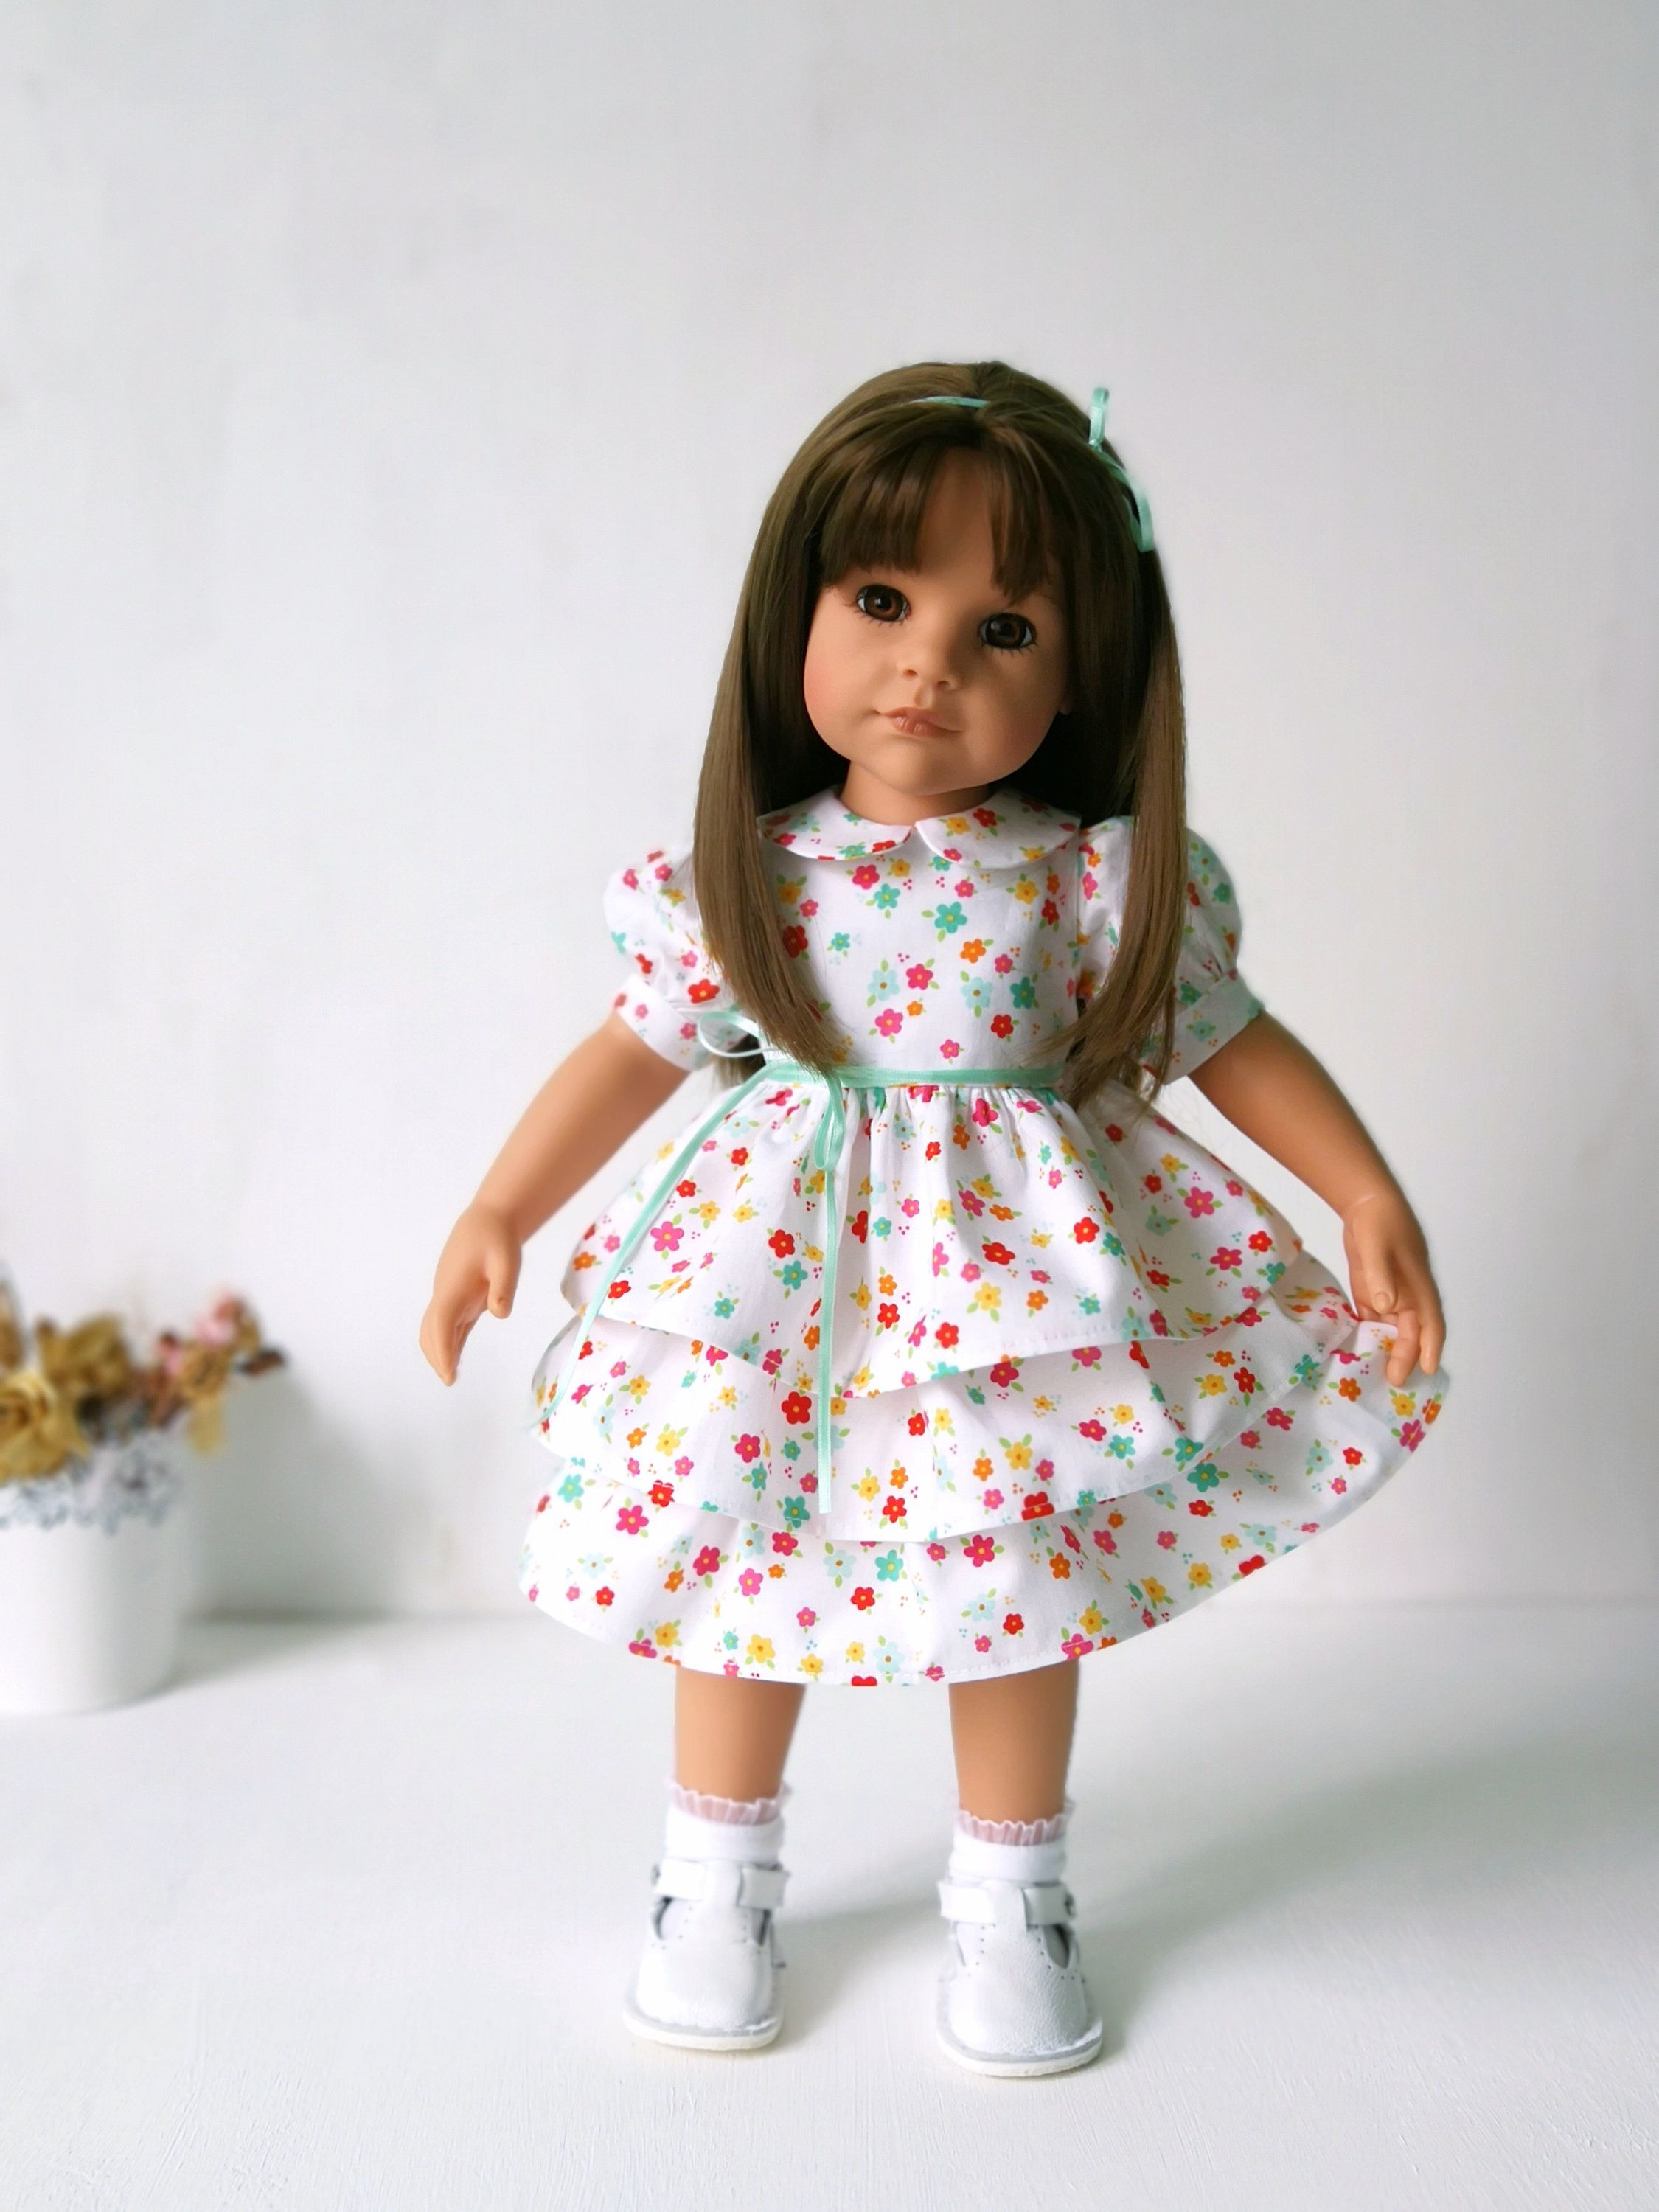 White dress with floral print for Gotz dolls /Gotz doll clothes /Doll dress /18 inch doll dress #18inchdollsandclothes